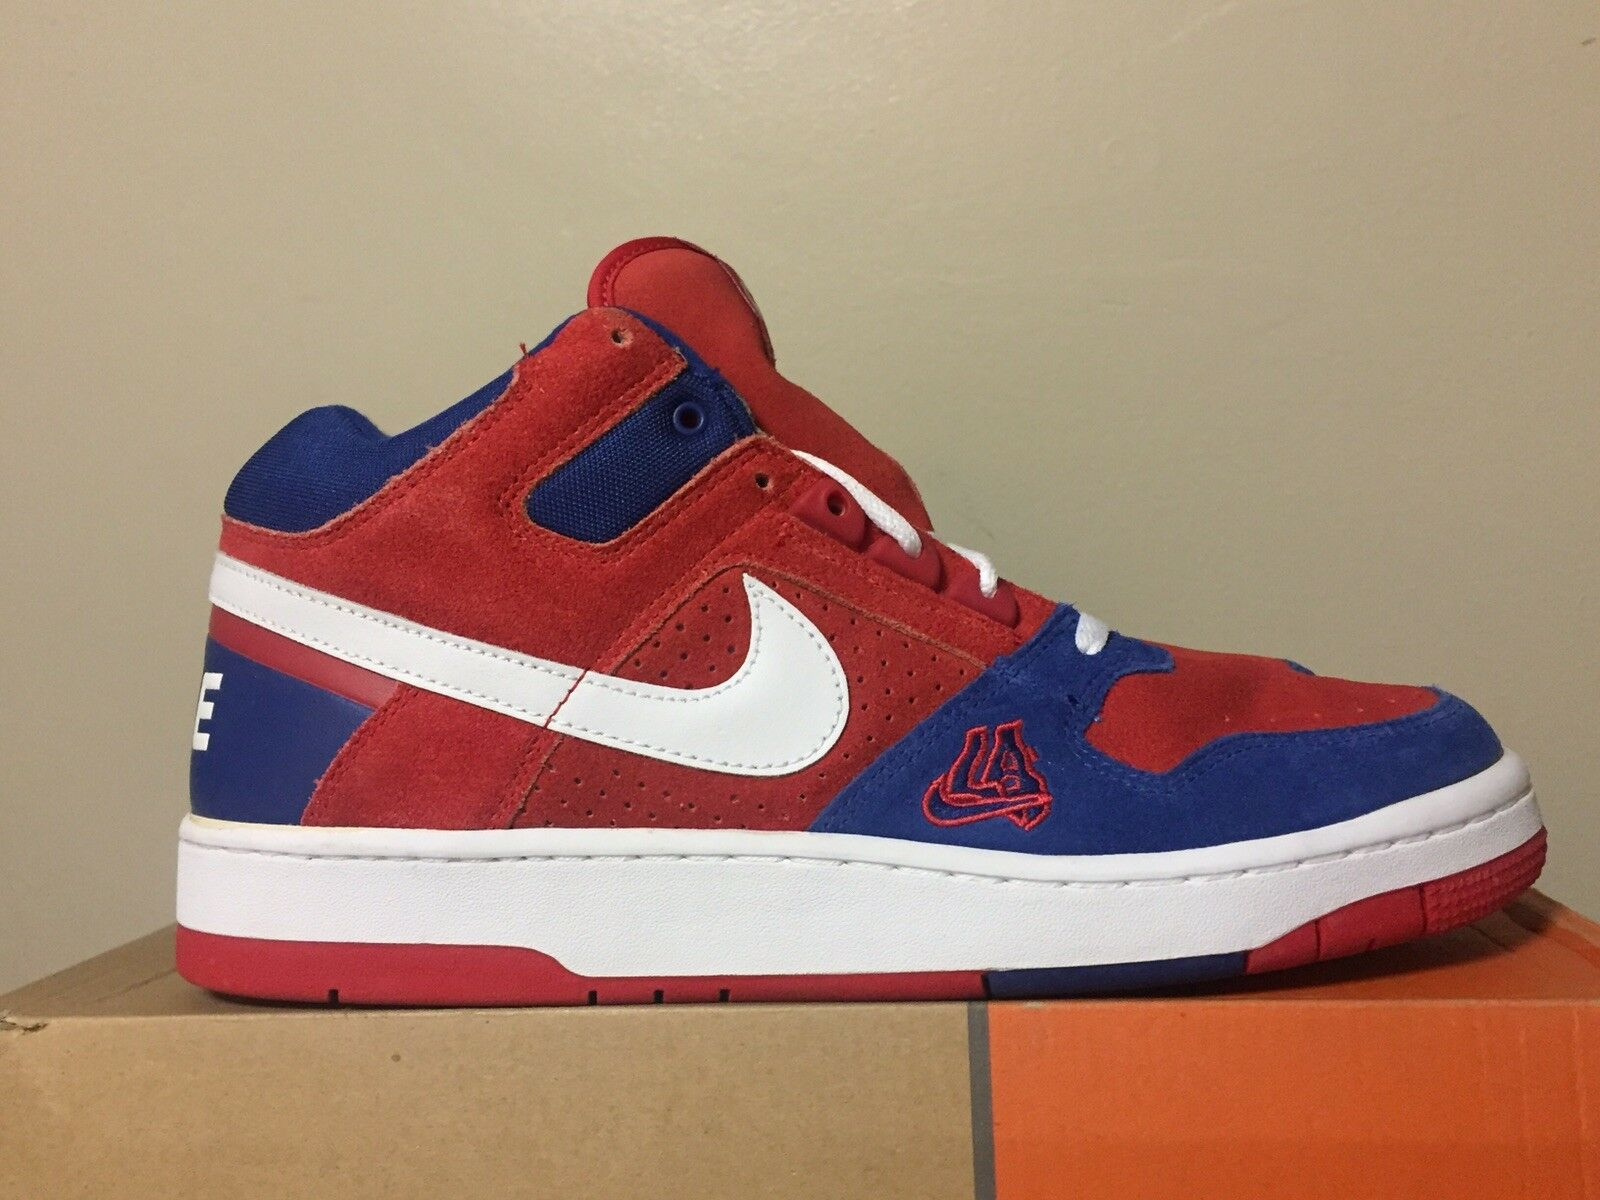 2003 Nike Air DELTA FORCE 3 4 1 LA CLIPPERS ED. RED WHITE blueE 309041-611 SZ.12